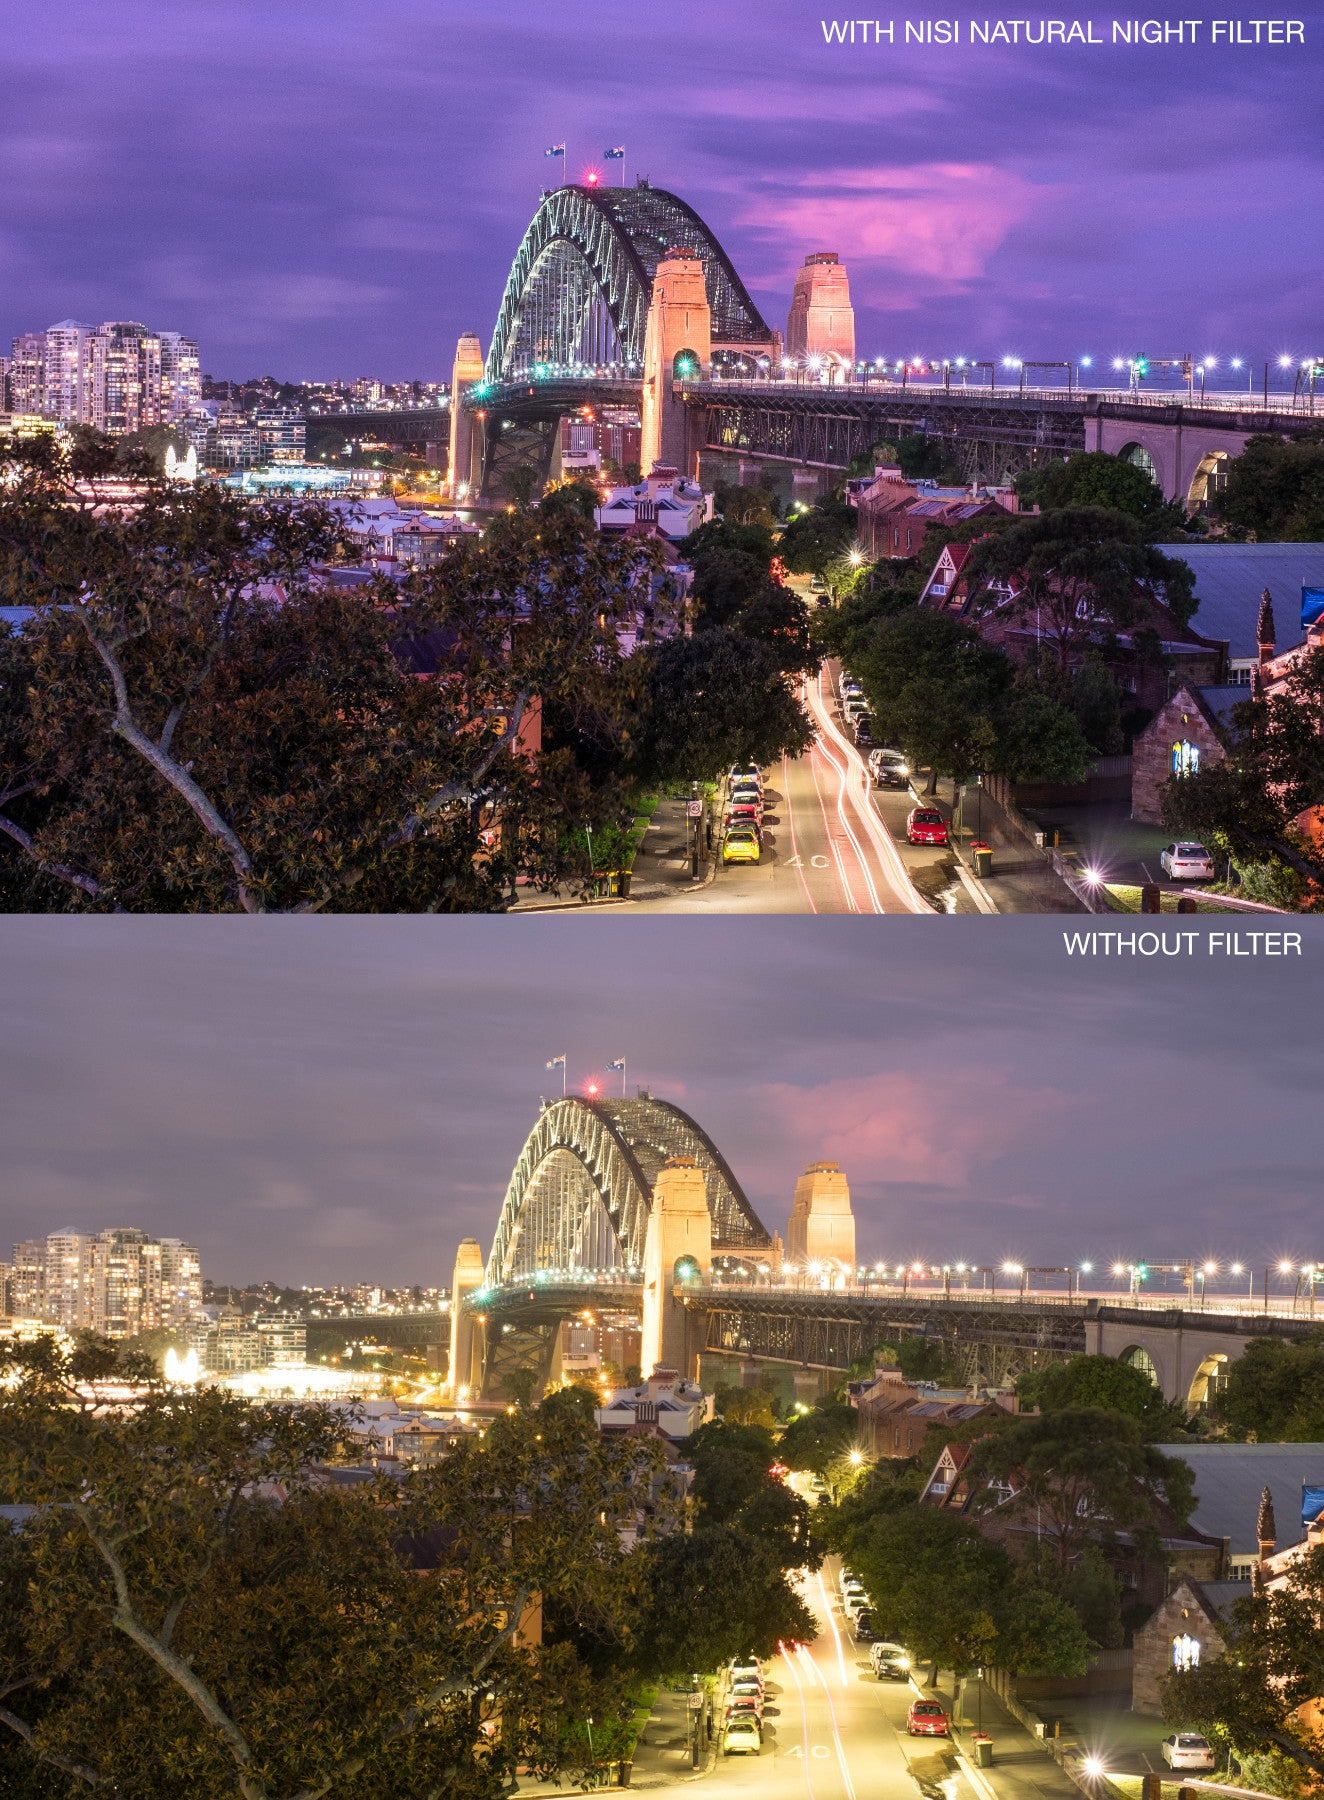 Night-Scene-Astro-Photography-Filter-Comparrison-Without-Filter-Nisi-Filters-100x100mm-Natural-Night-Filter-Nisi_Filters-Australia